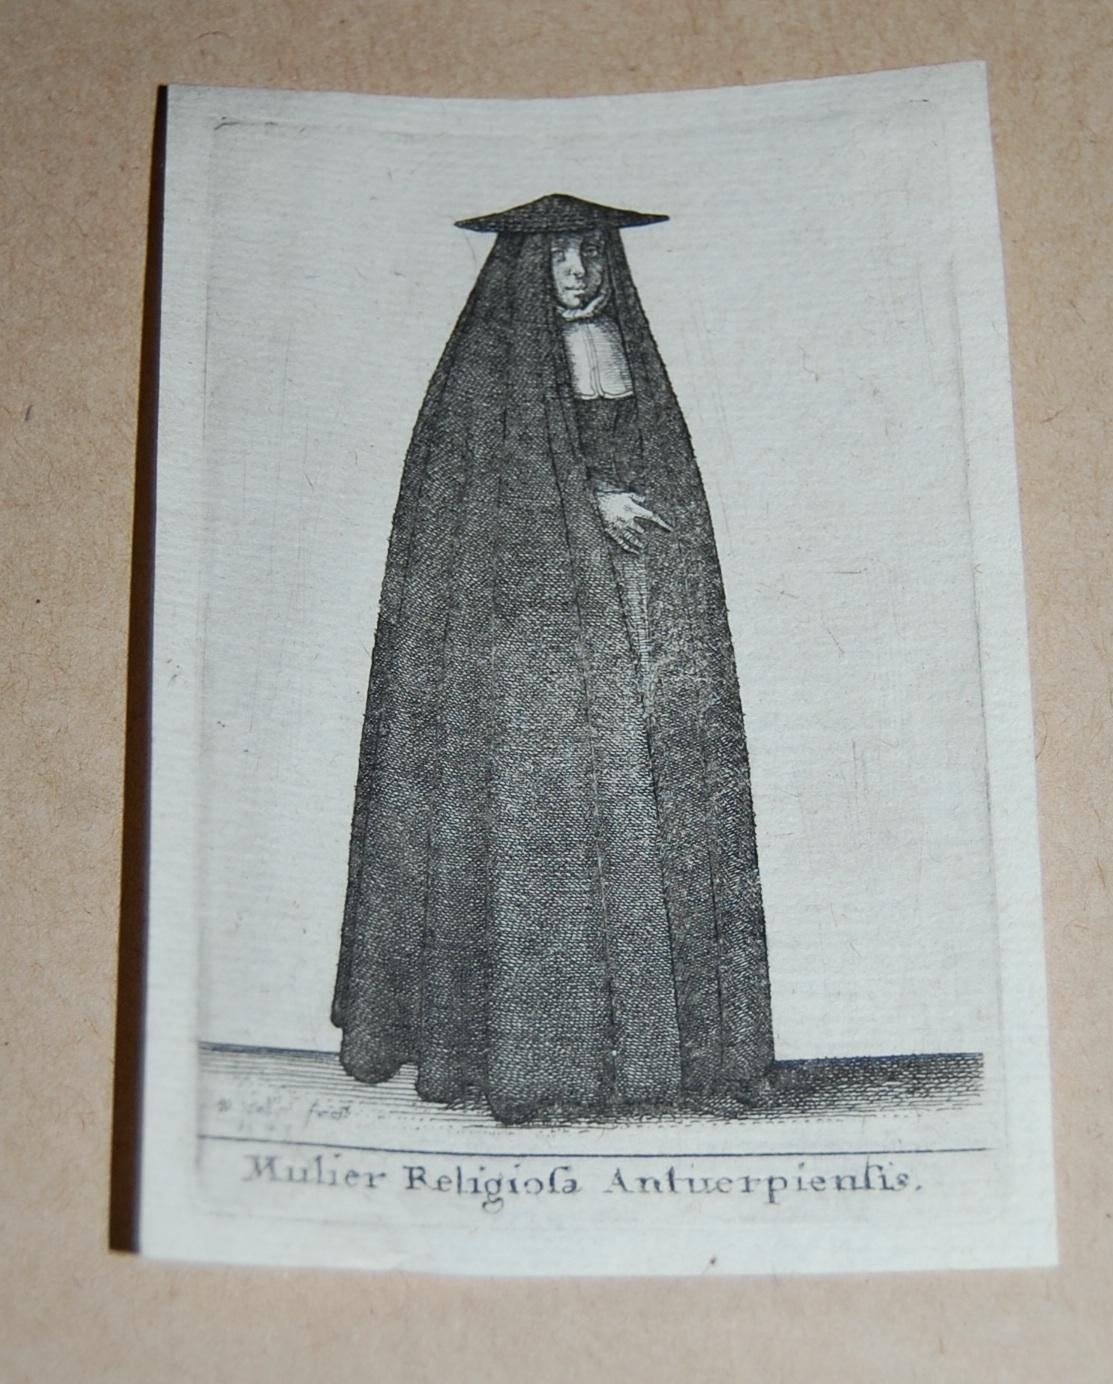 Mulier Religiosa Antuerpiensis. Original Etching Fashion Plate. Hollar, Wenceslaus. Pagination: Single leaf, plate. A fine, clean impression, with large and clean margins. Original etching, beautiful. Mounting tape at top of verso cor